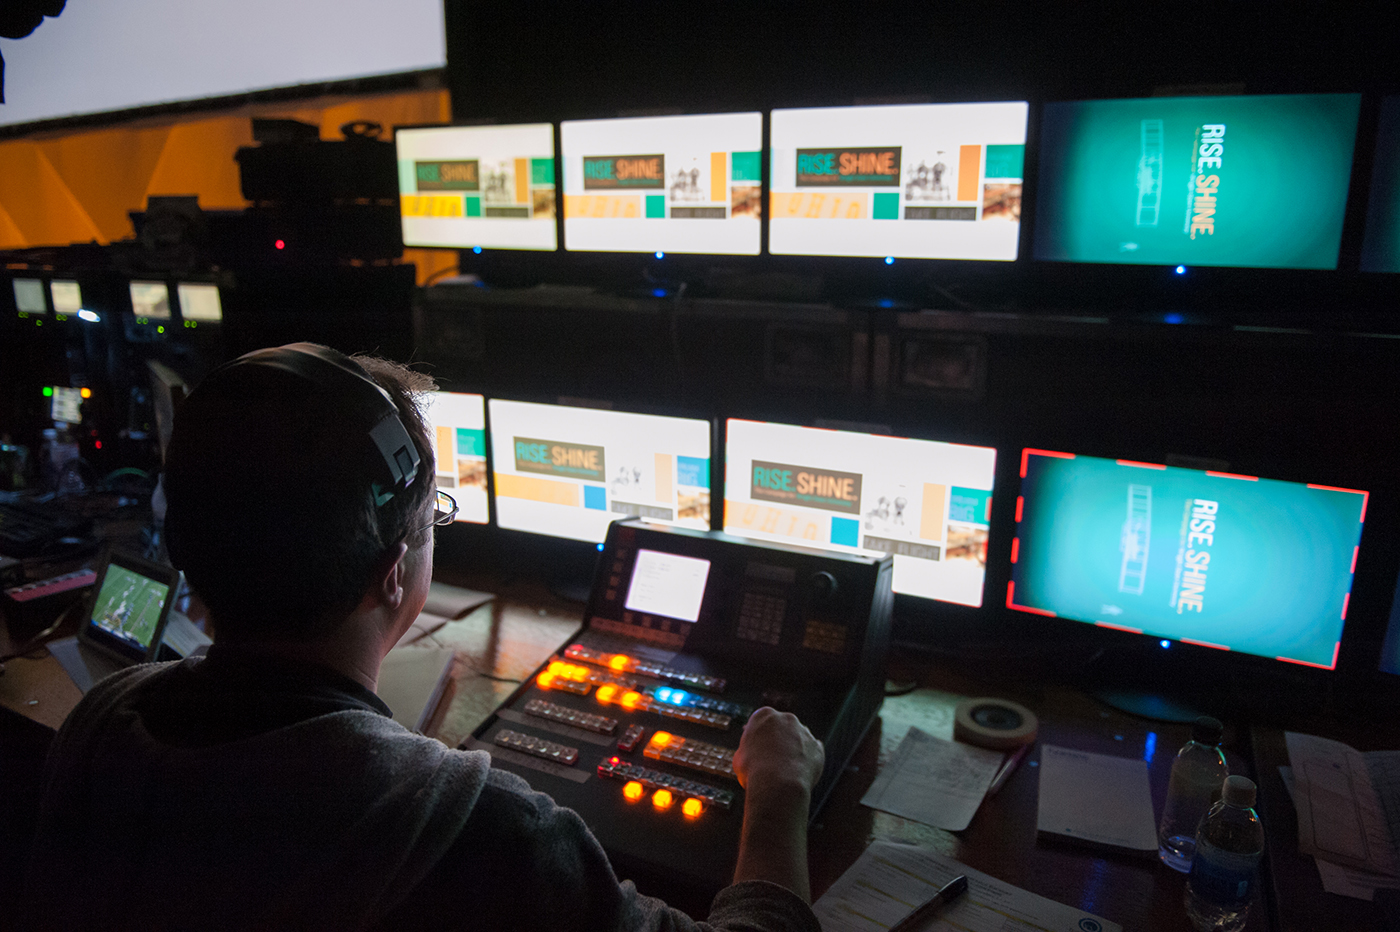 Behind the scenes controlling the show.